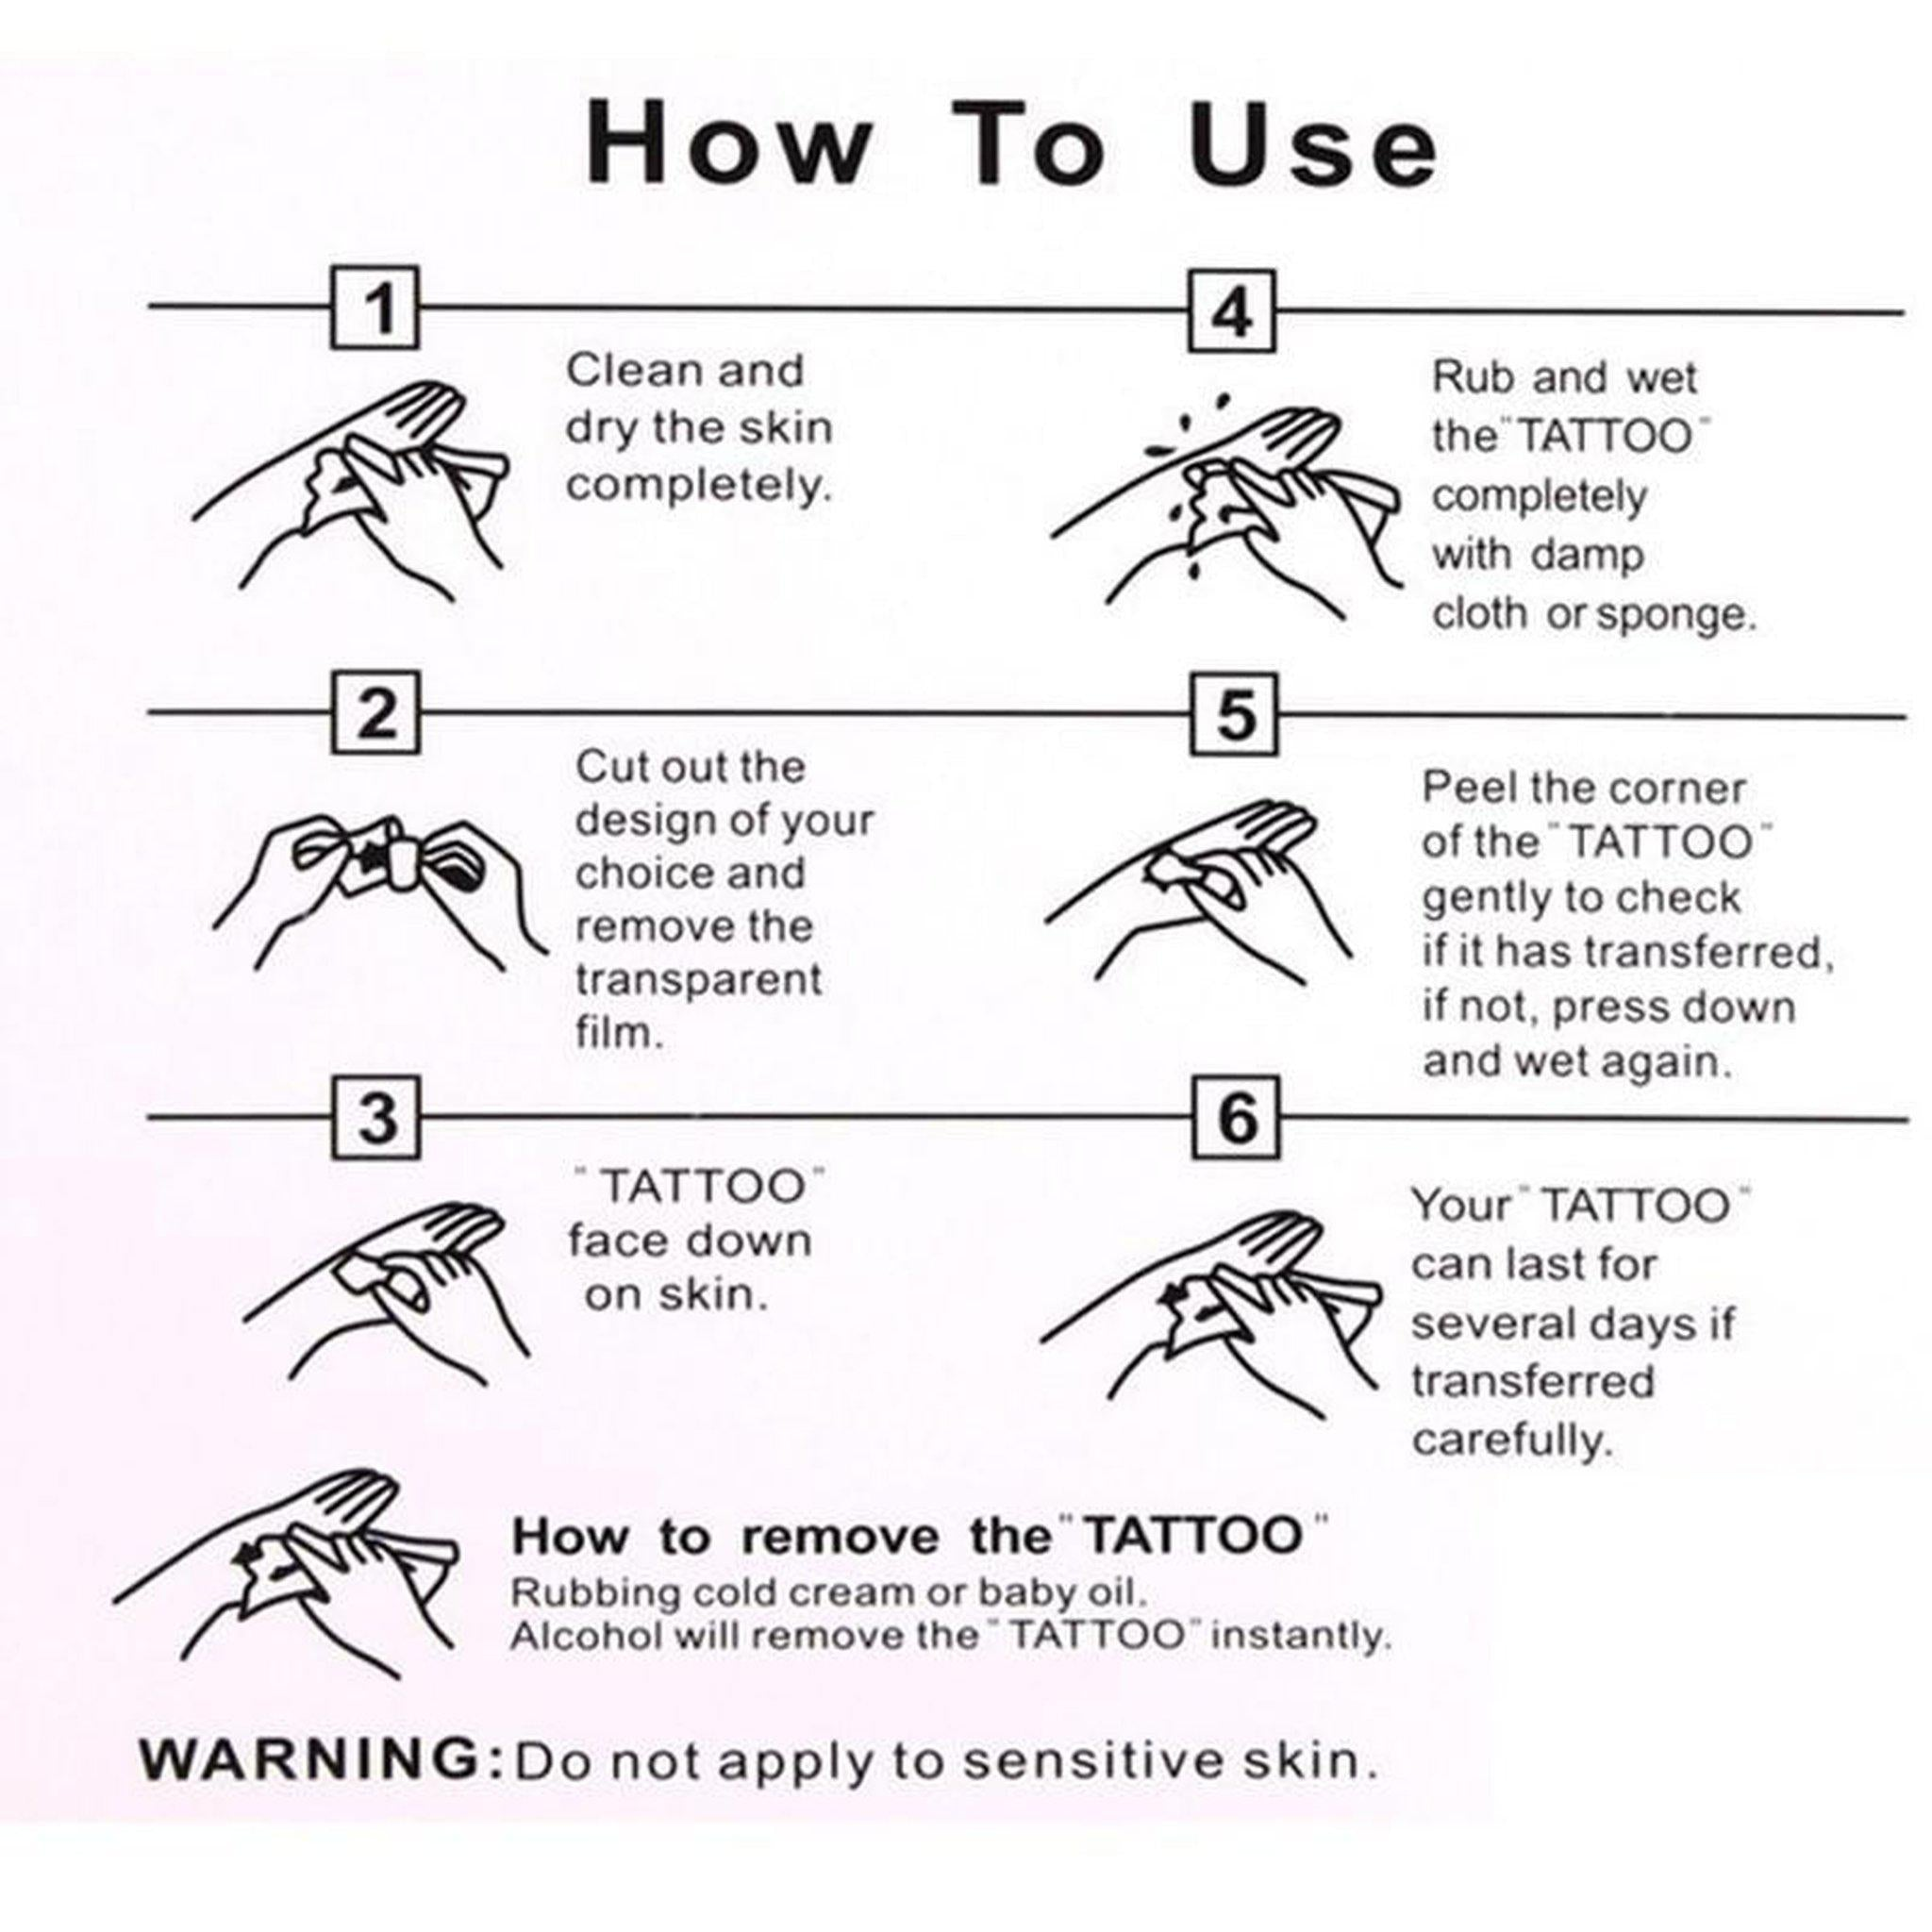 Queens of Spades Waterproof Temporary Tattoos-Good Girl xox-buy-bdsm-bondage-gear-tools-toys-online-good-girl-xox